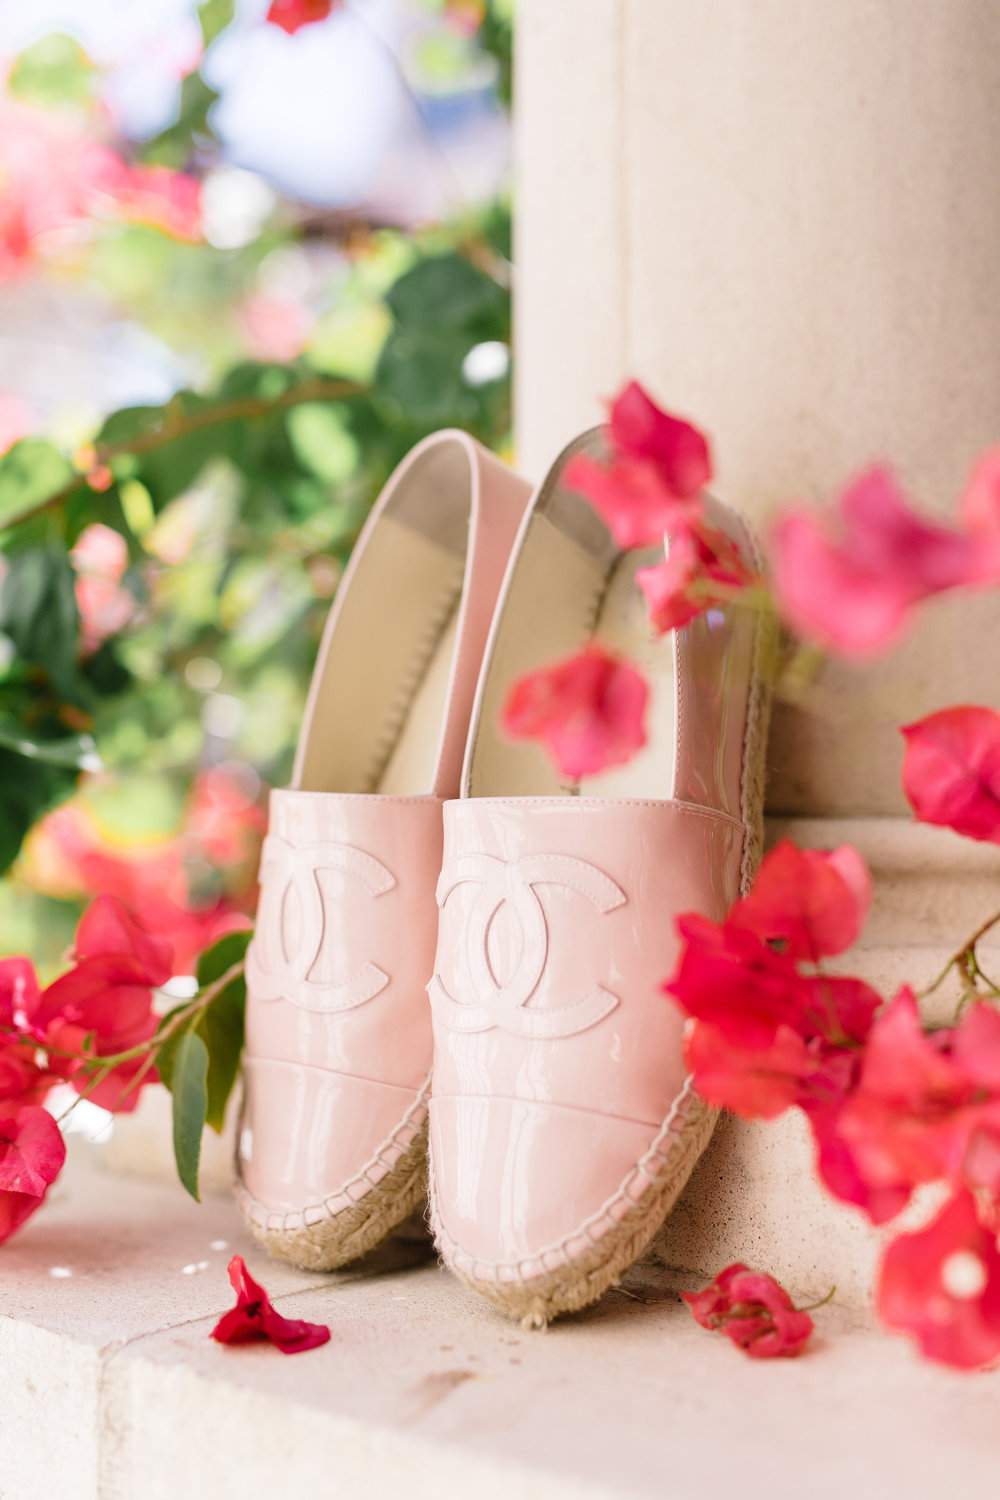 Chanel Slippers, Winter Park wedding details